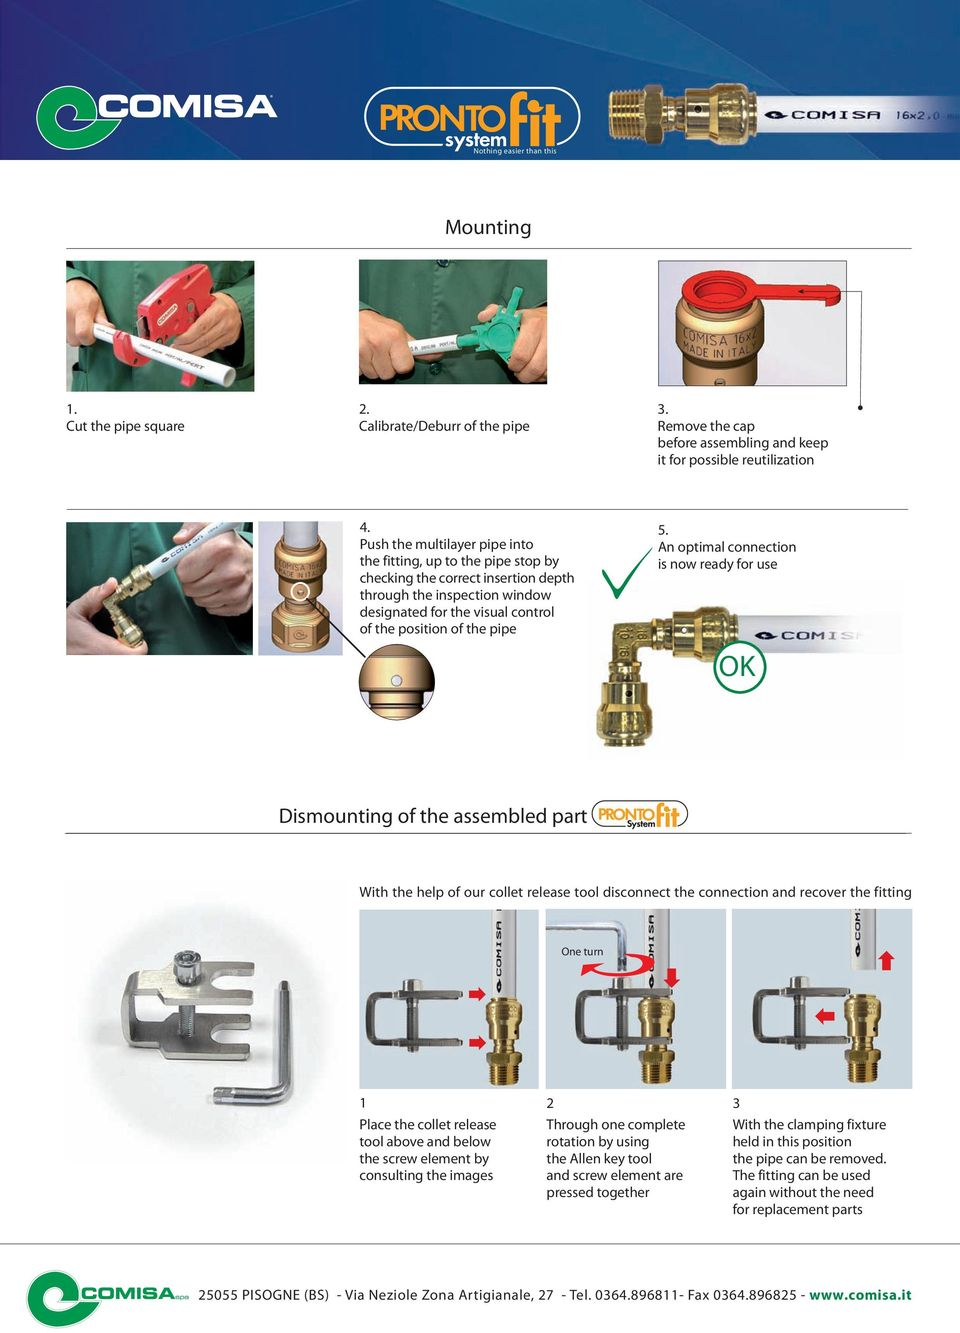 An optimal connection is now ready for use OK Dismounting of the assembled part PRONTO FIT With the help of our collet release tool disconnect the connection and recover the fitting One turn 1 Place